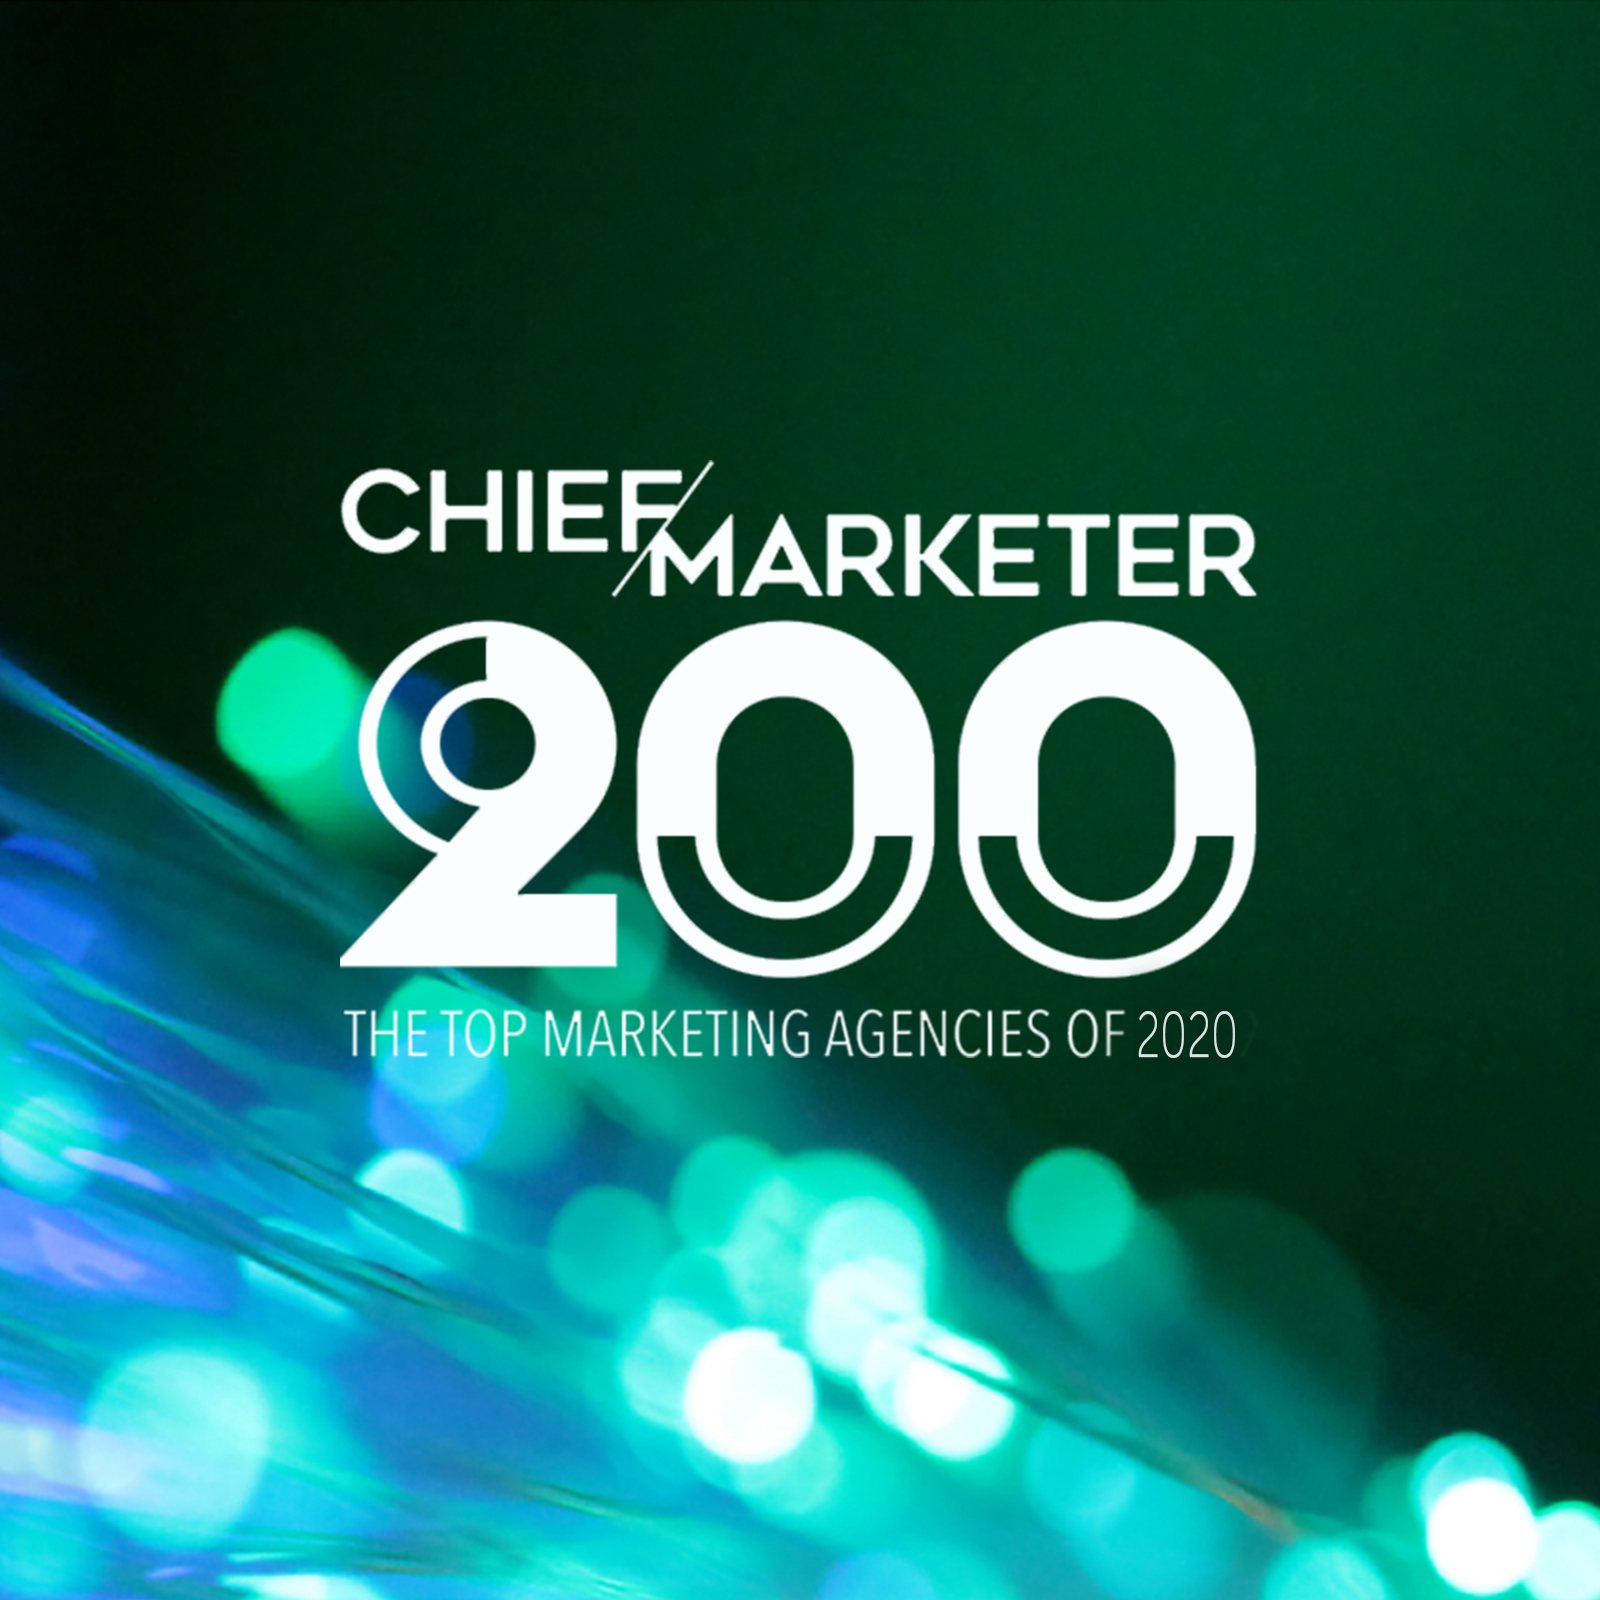 chief-marketer-200-graphic-2-2